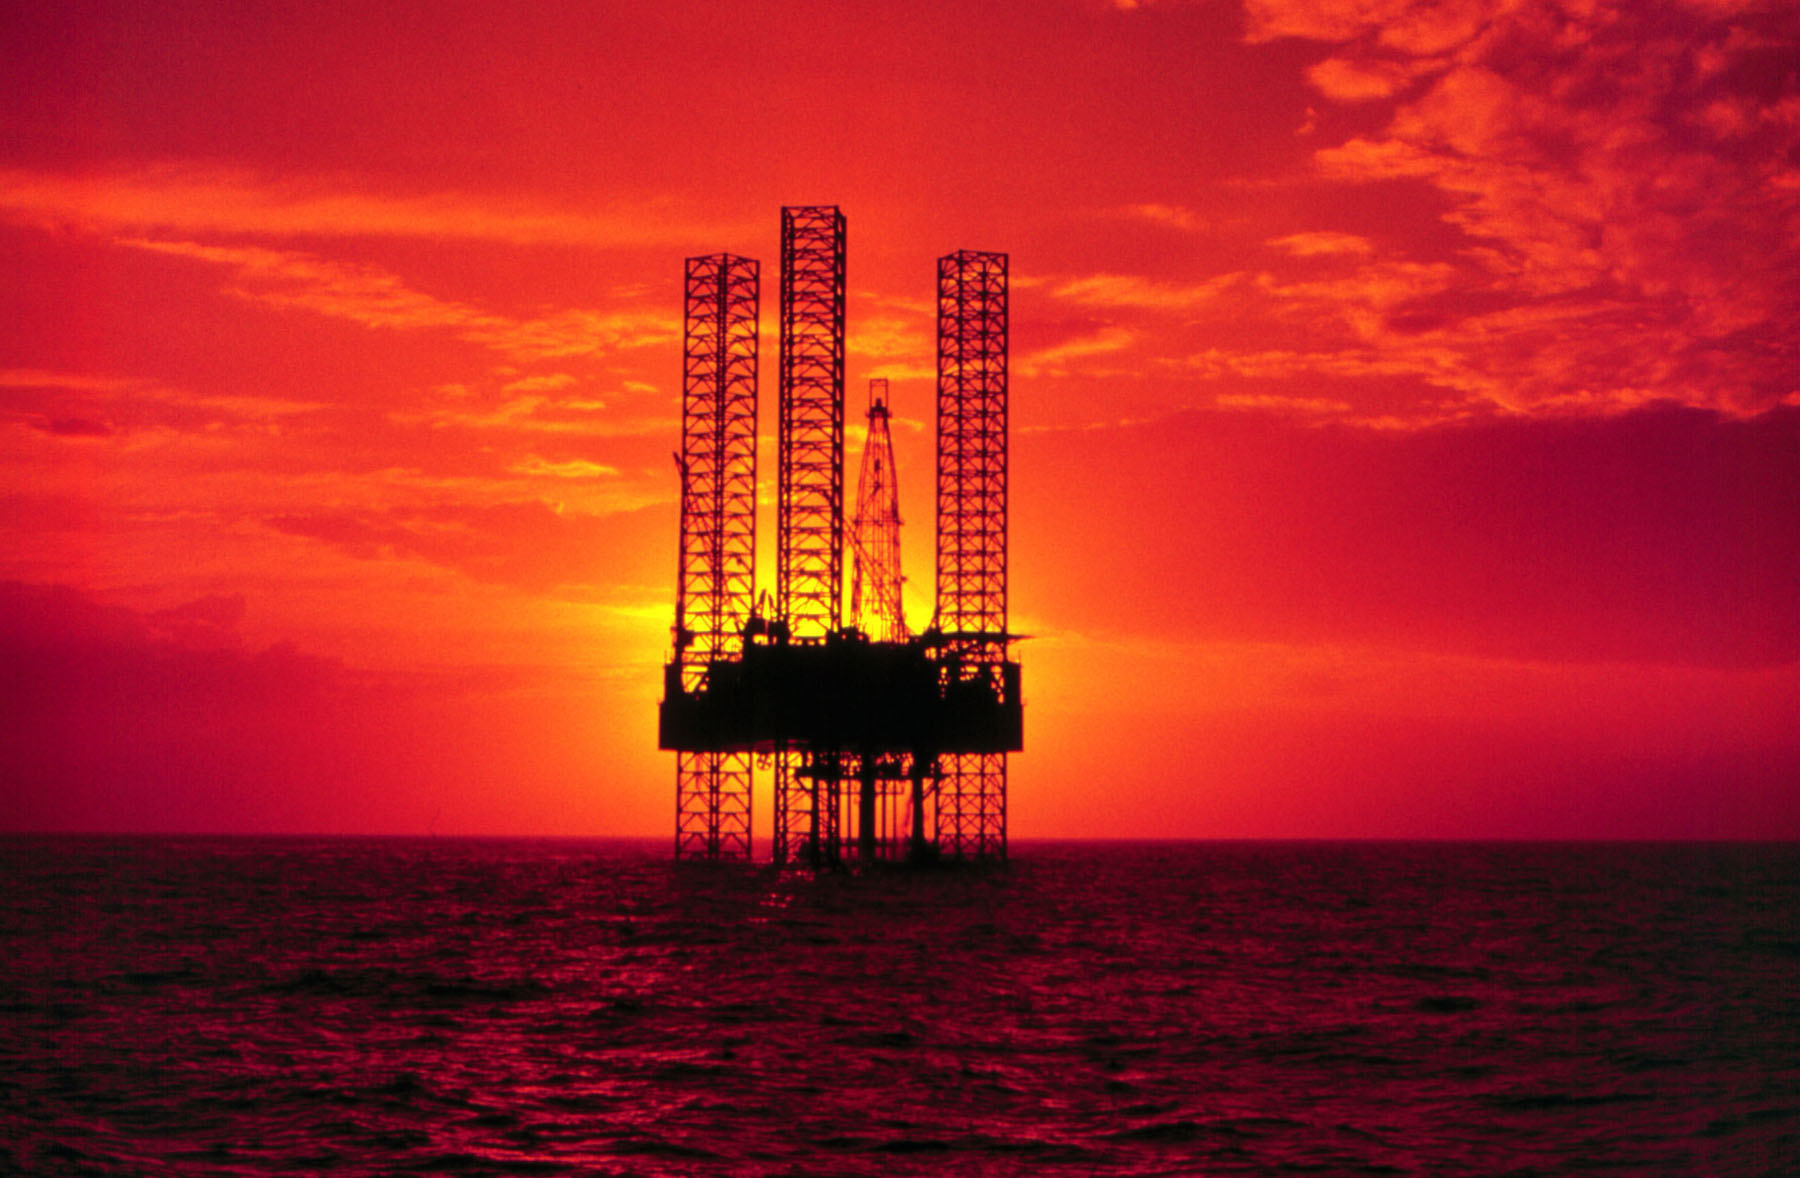 Mexico Oil Platform in the Gulf of Mexico